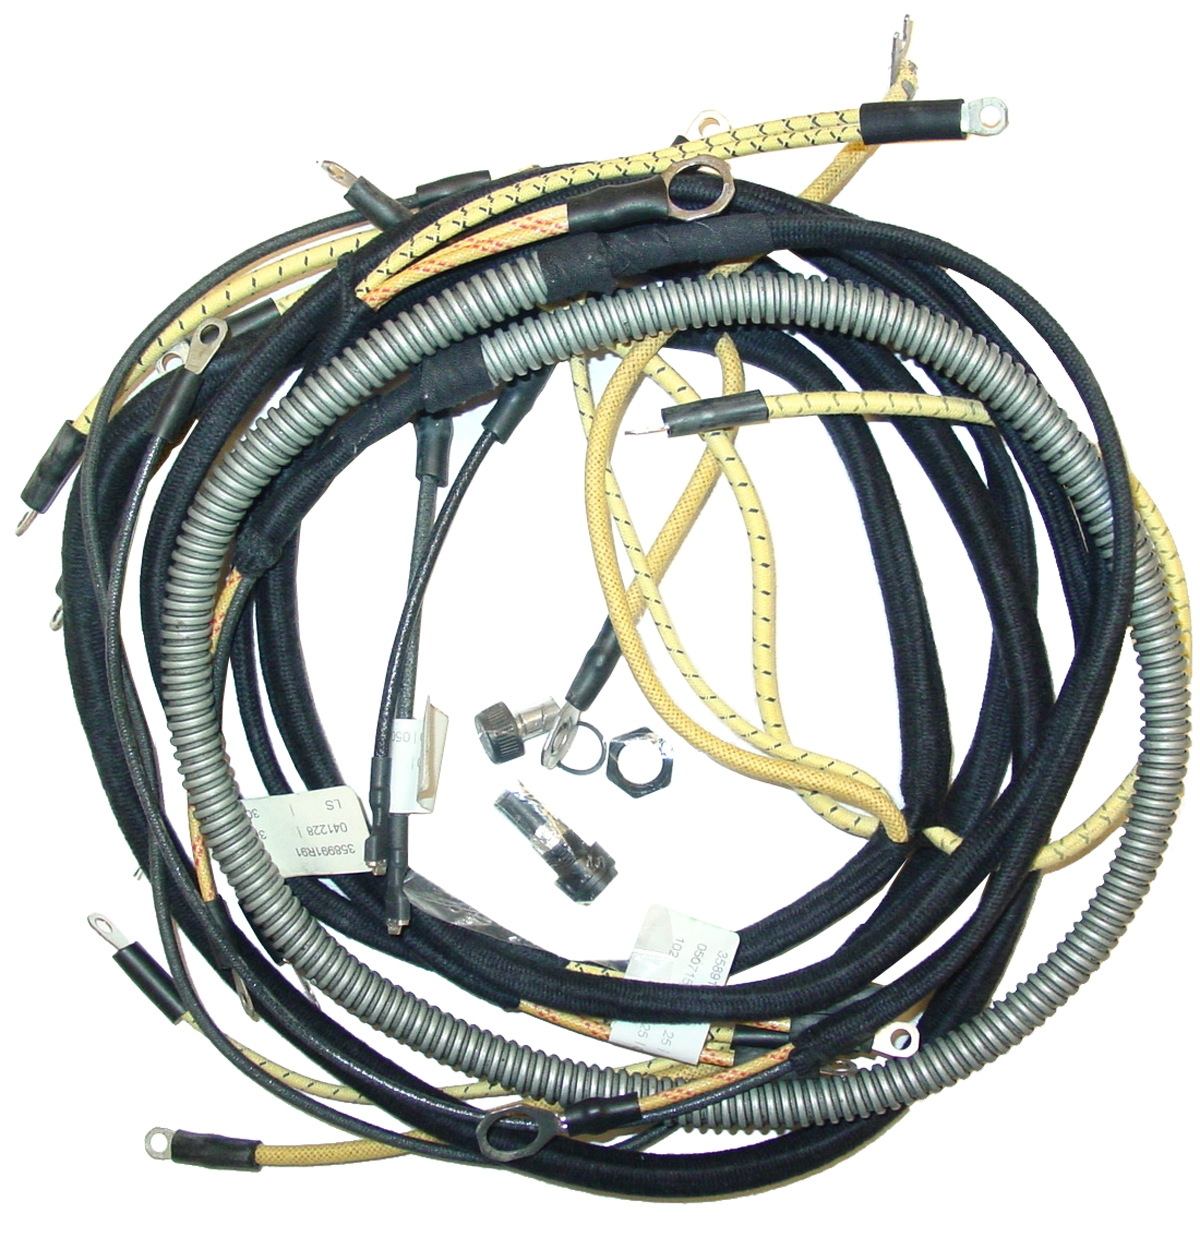 Tractor Wiring Harness Change Your Idea With Diagram Design International Diagrams Case Ih Parts Ford Assemblies